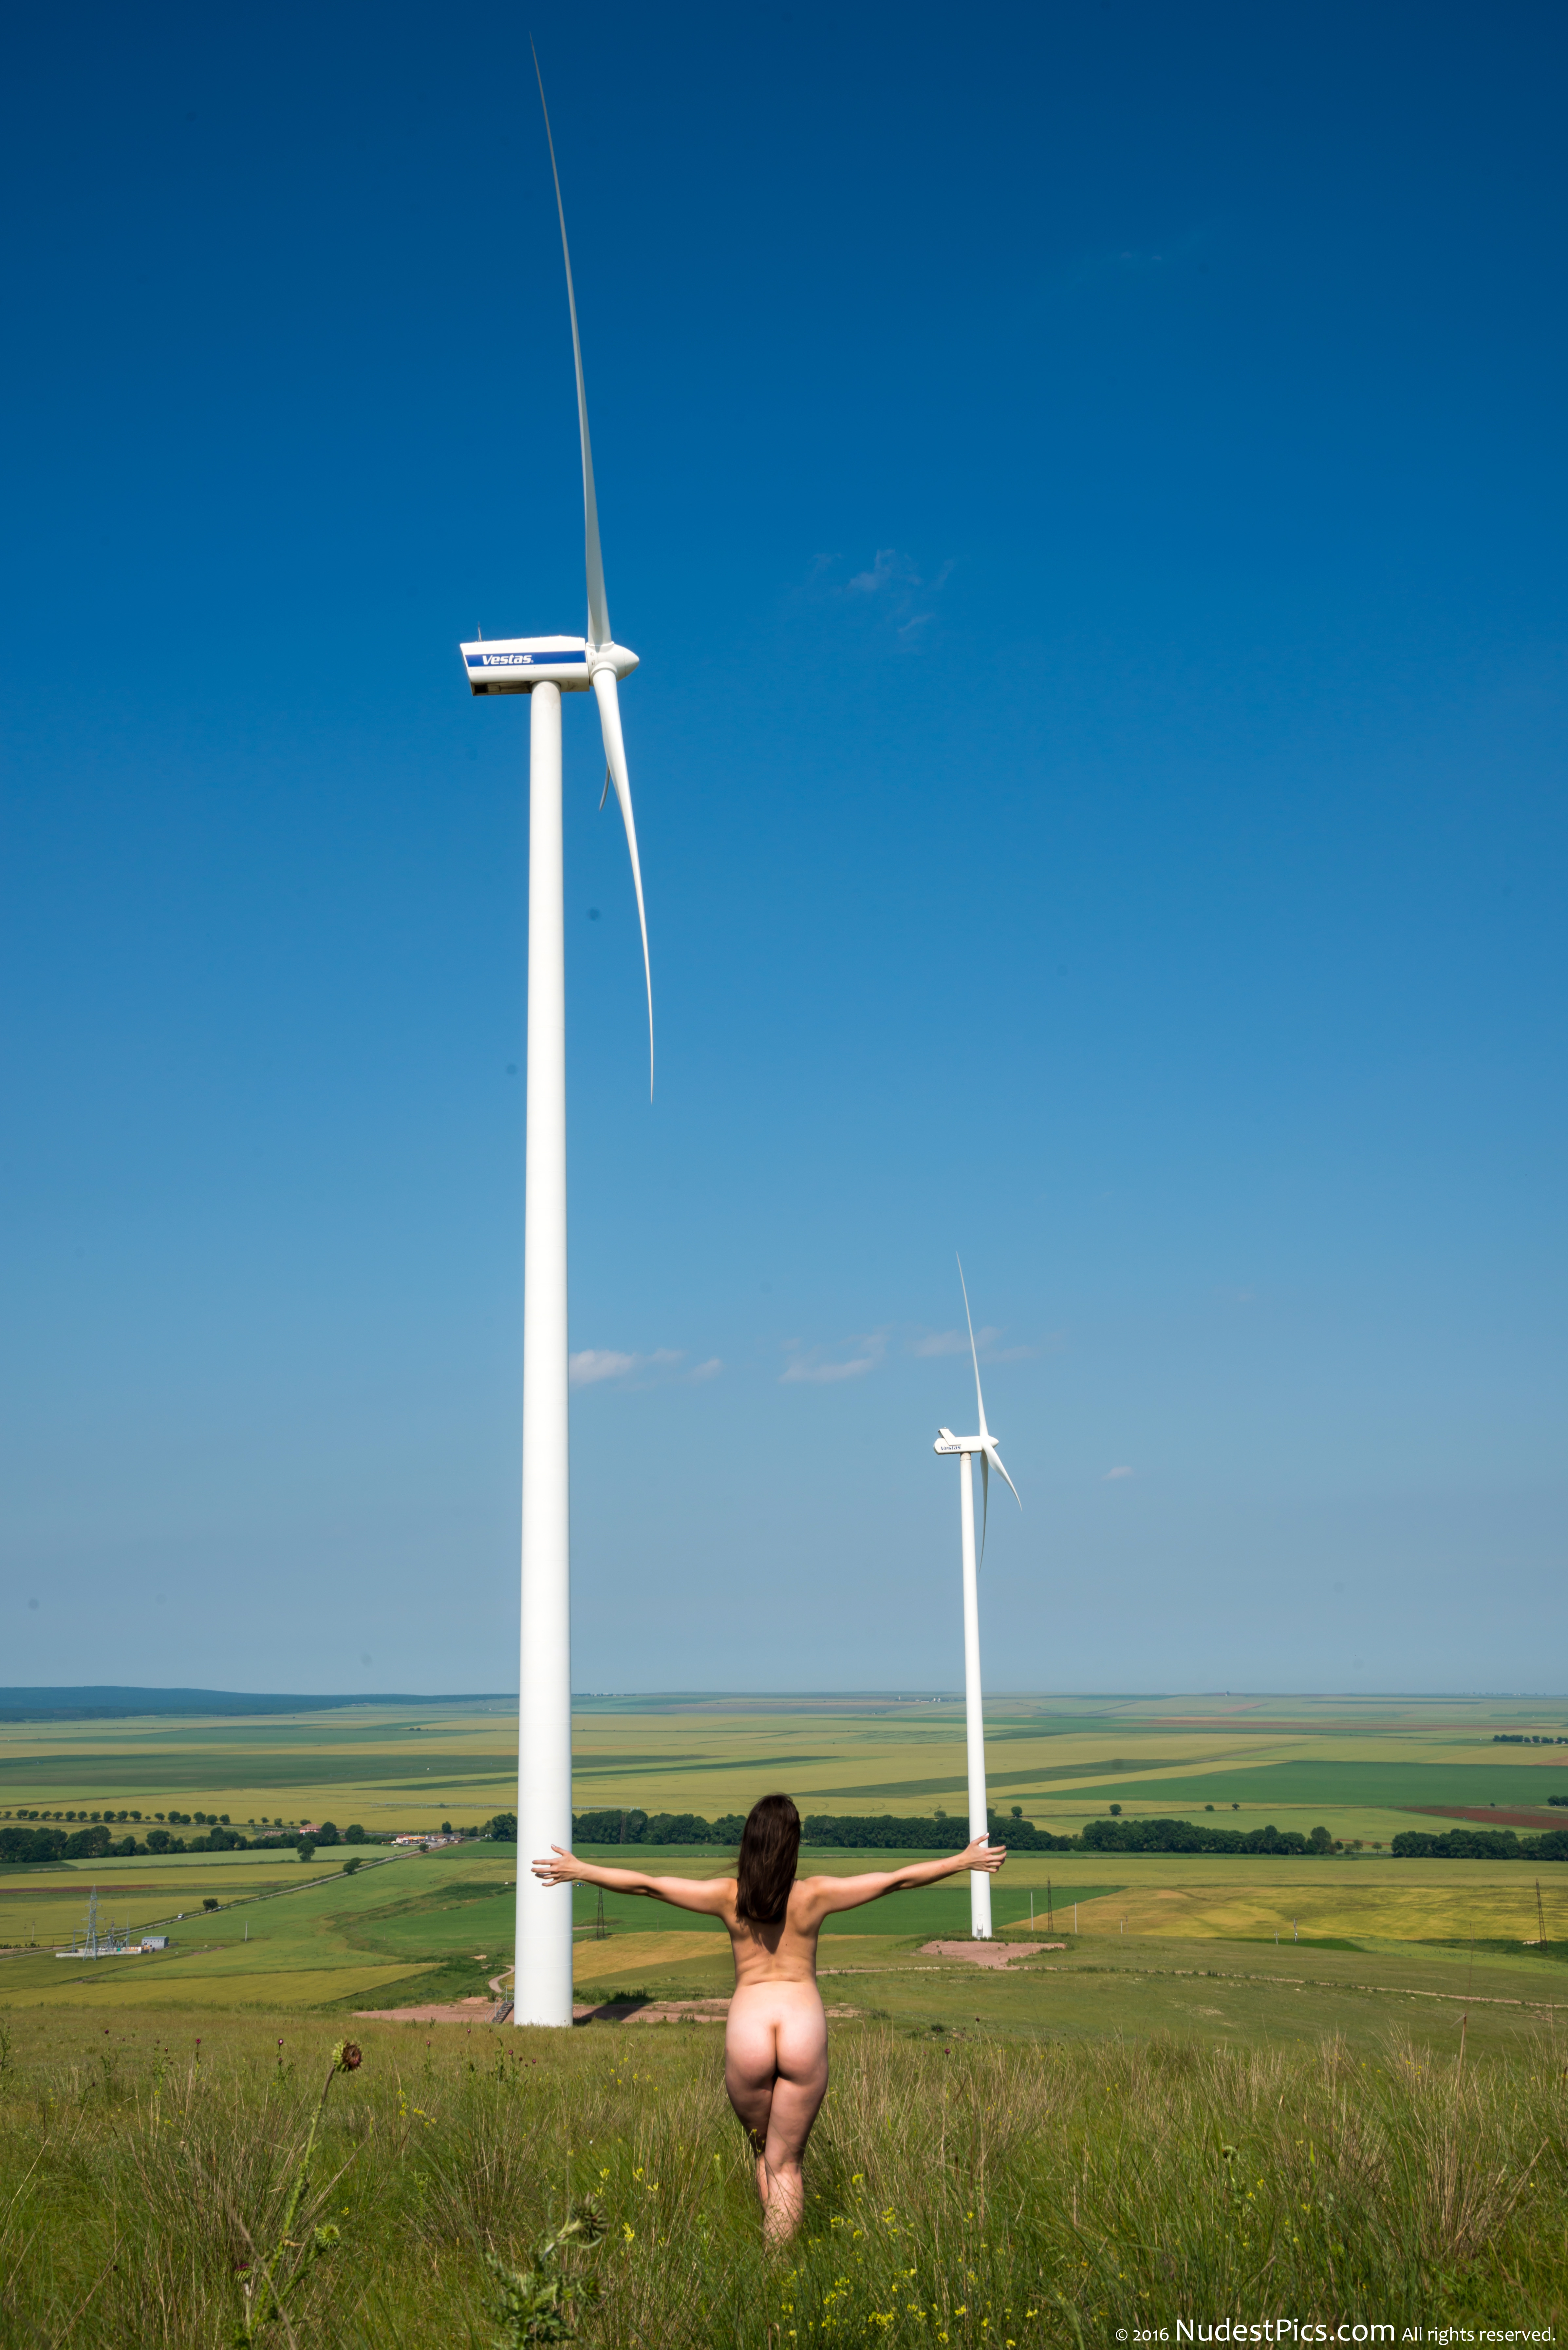 Nude Girl at the Wind Farm on Green Field